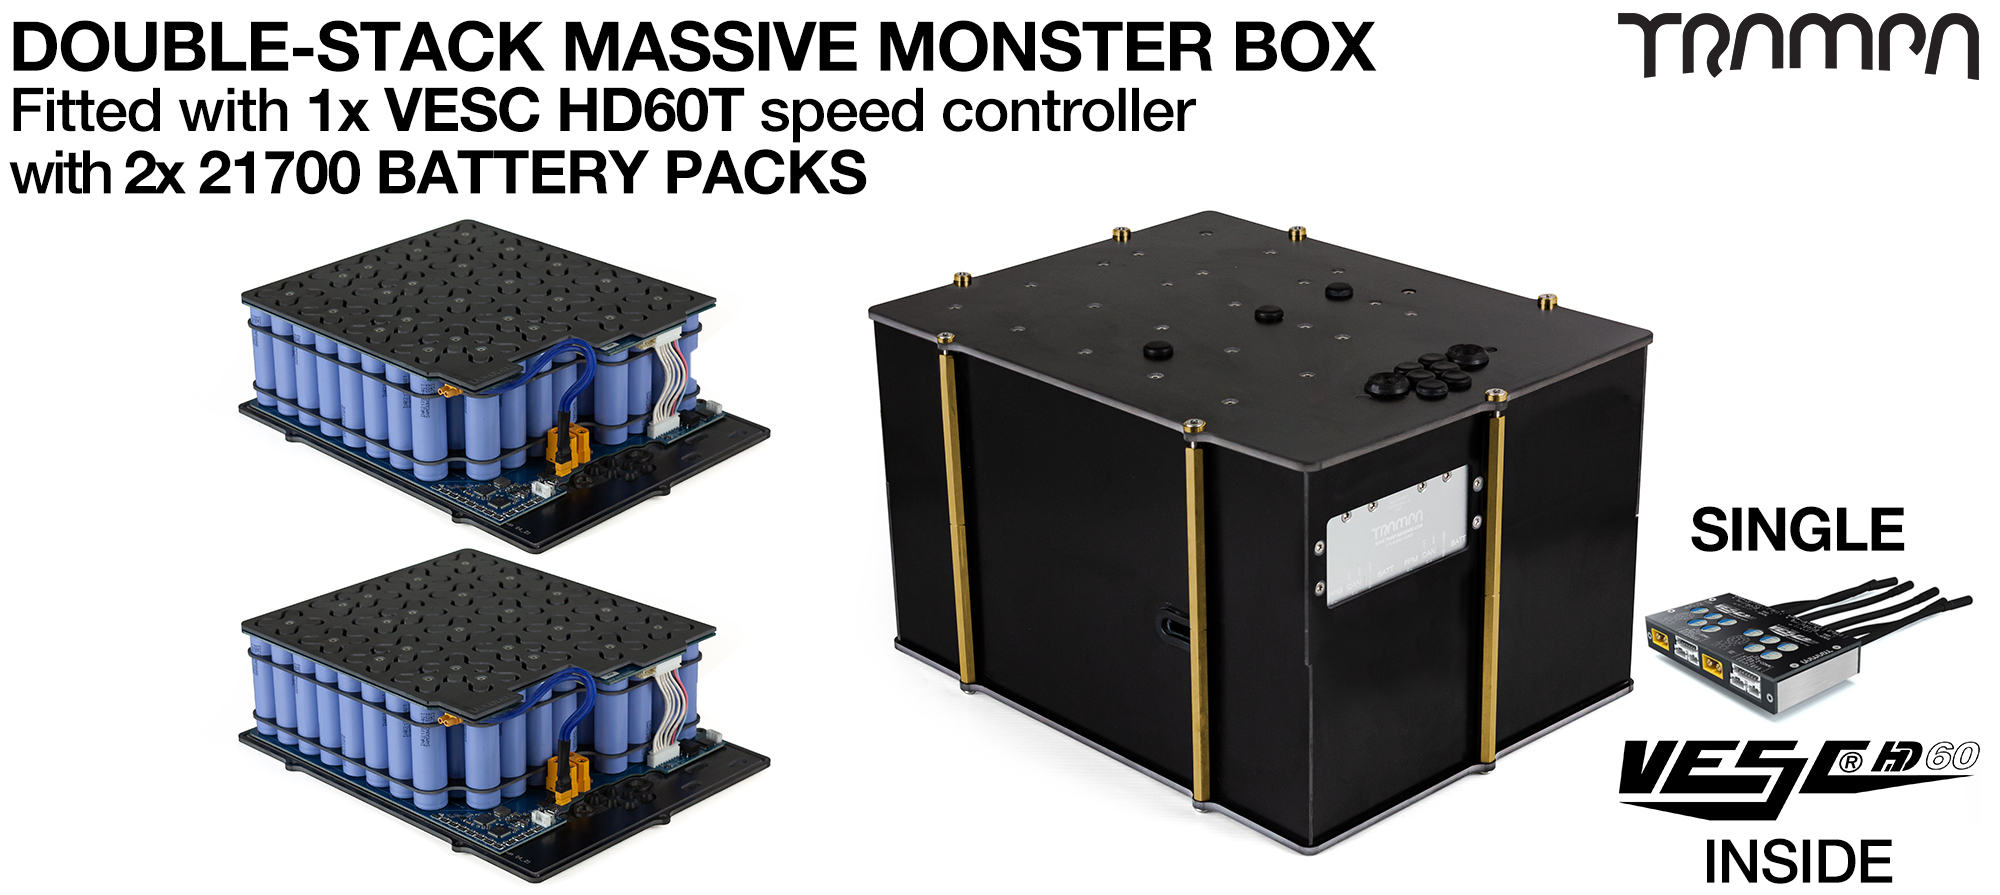 2WD DOUBLE STACK MASSIVE MONSTER Box 21700 PCB Pack with 1x VESC HD-60Twin & 168x 21700 cells 12s7p = 70Ah - Specifically made to work in conjunction with TRAMPA's Electric Decks but can be adapted to fit anything - UK Customers only